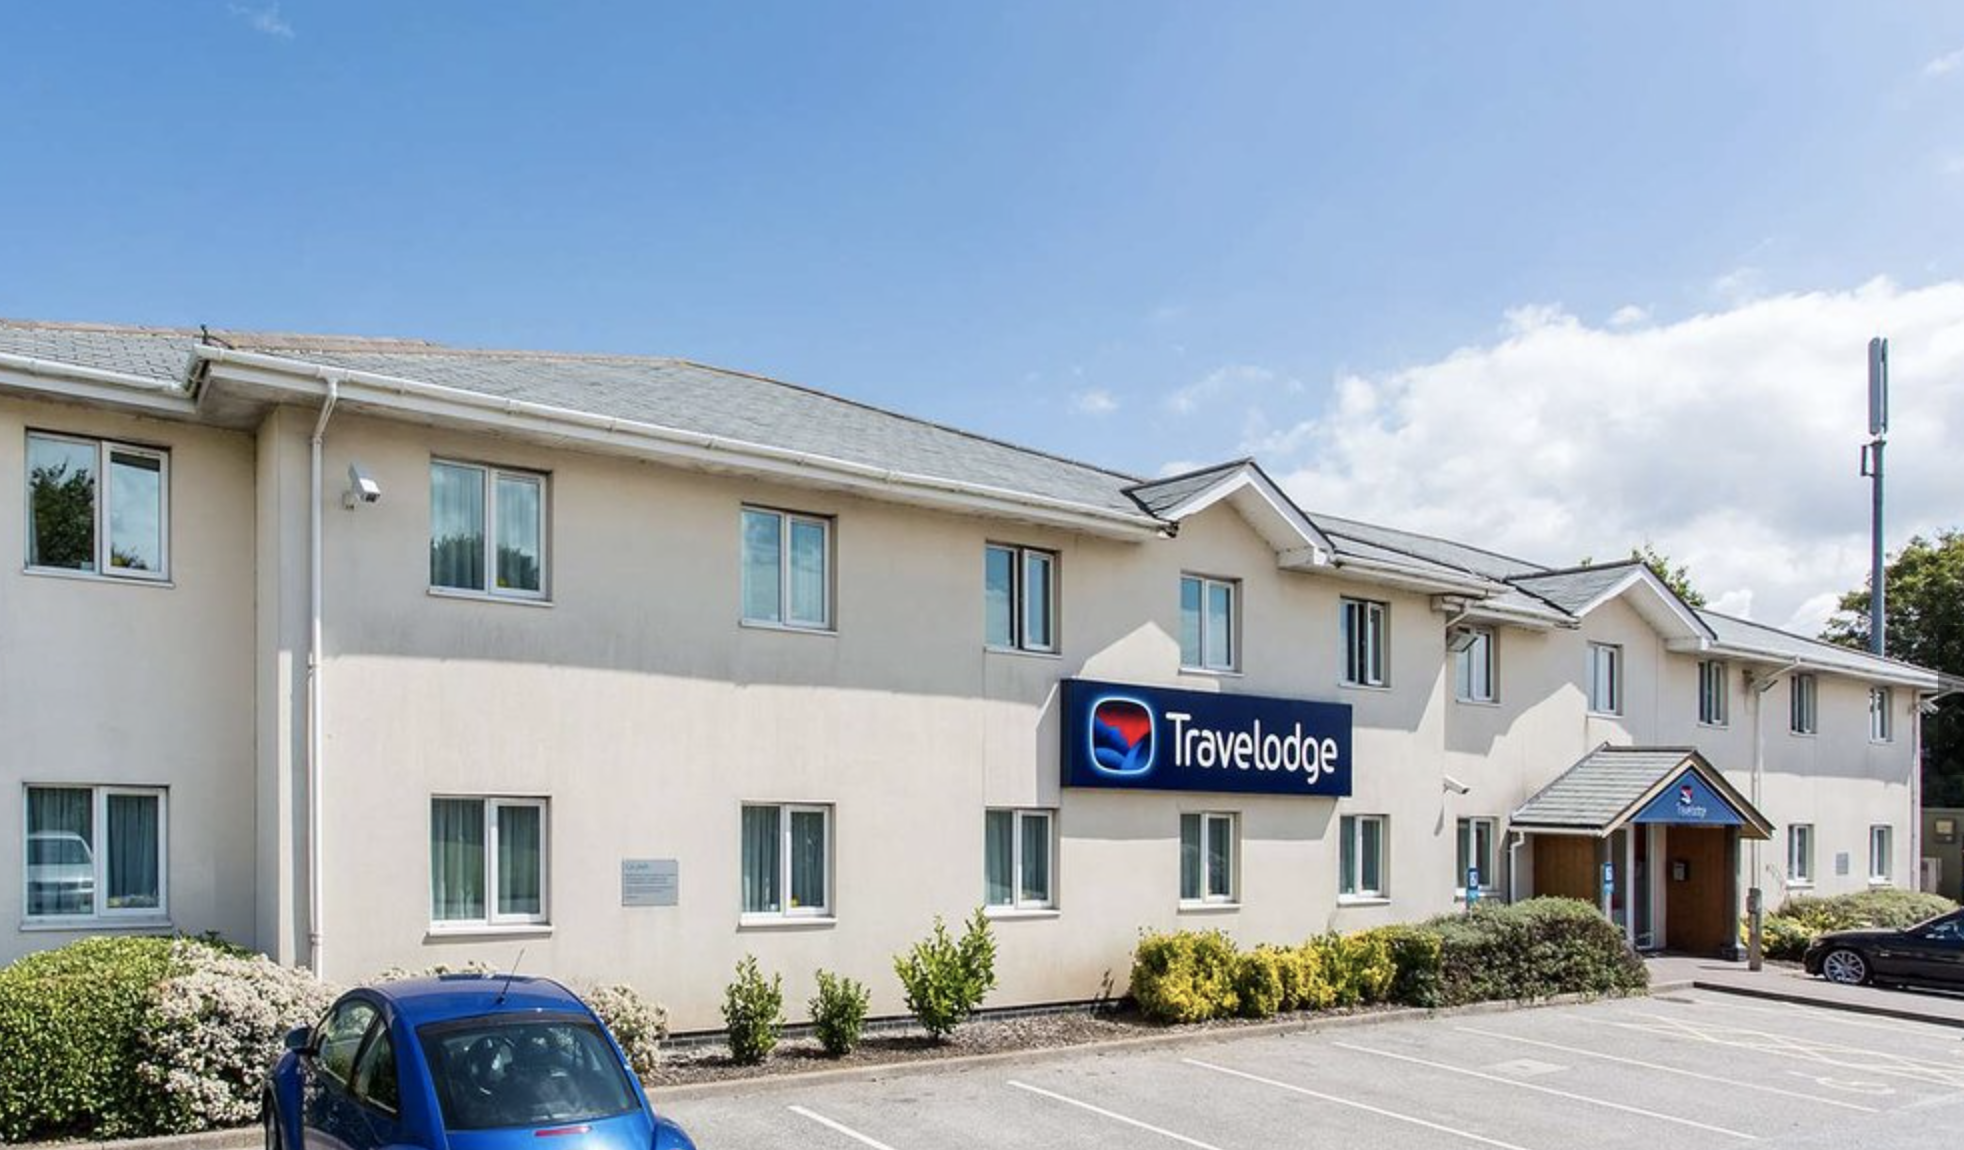 """The Travelodge hotel in Hayle, Cornwall. The chain are """"actively looking"""" at opening a hotel on Scilly. Image courtesy of Travelodge."""